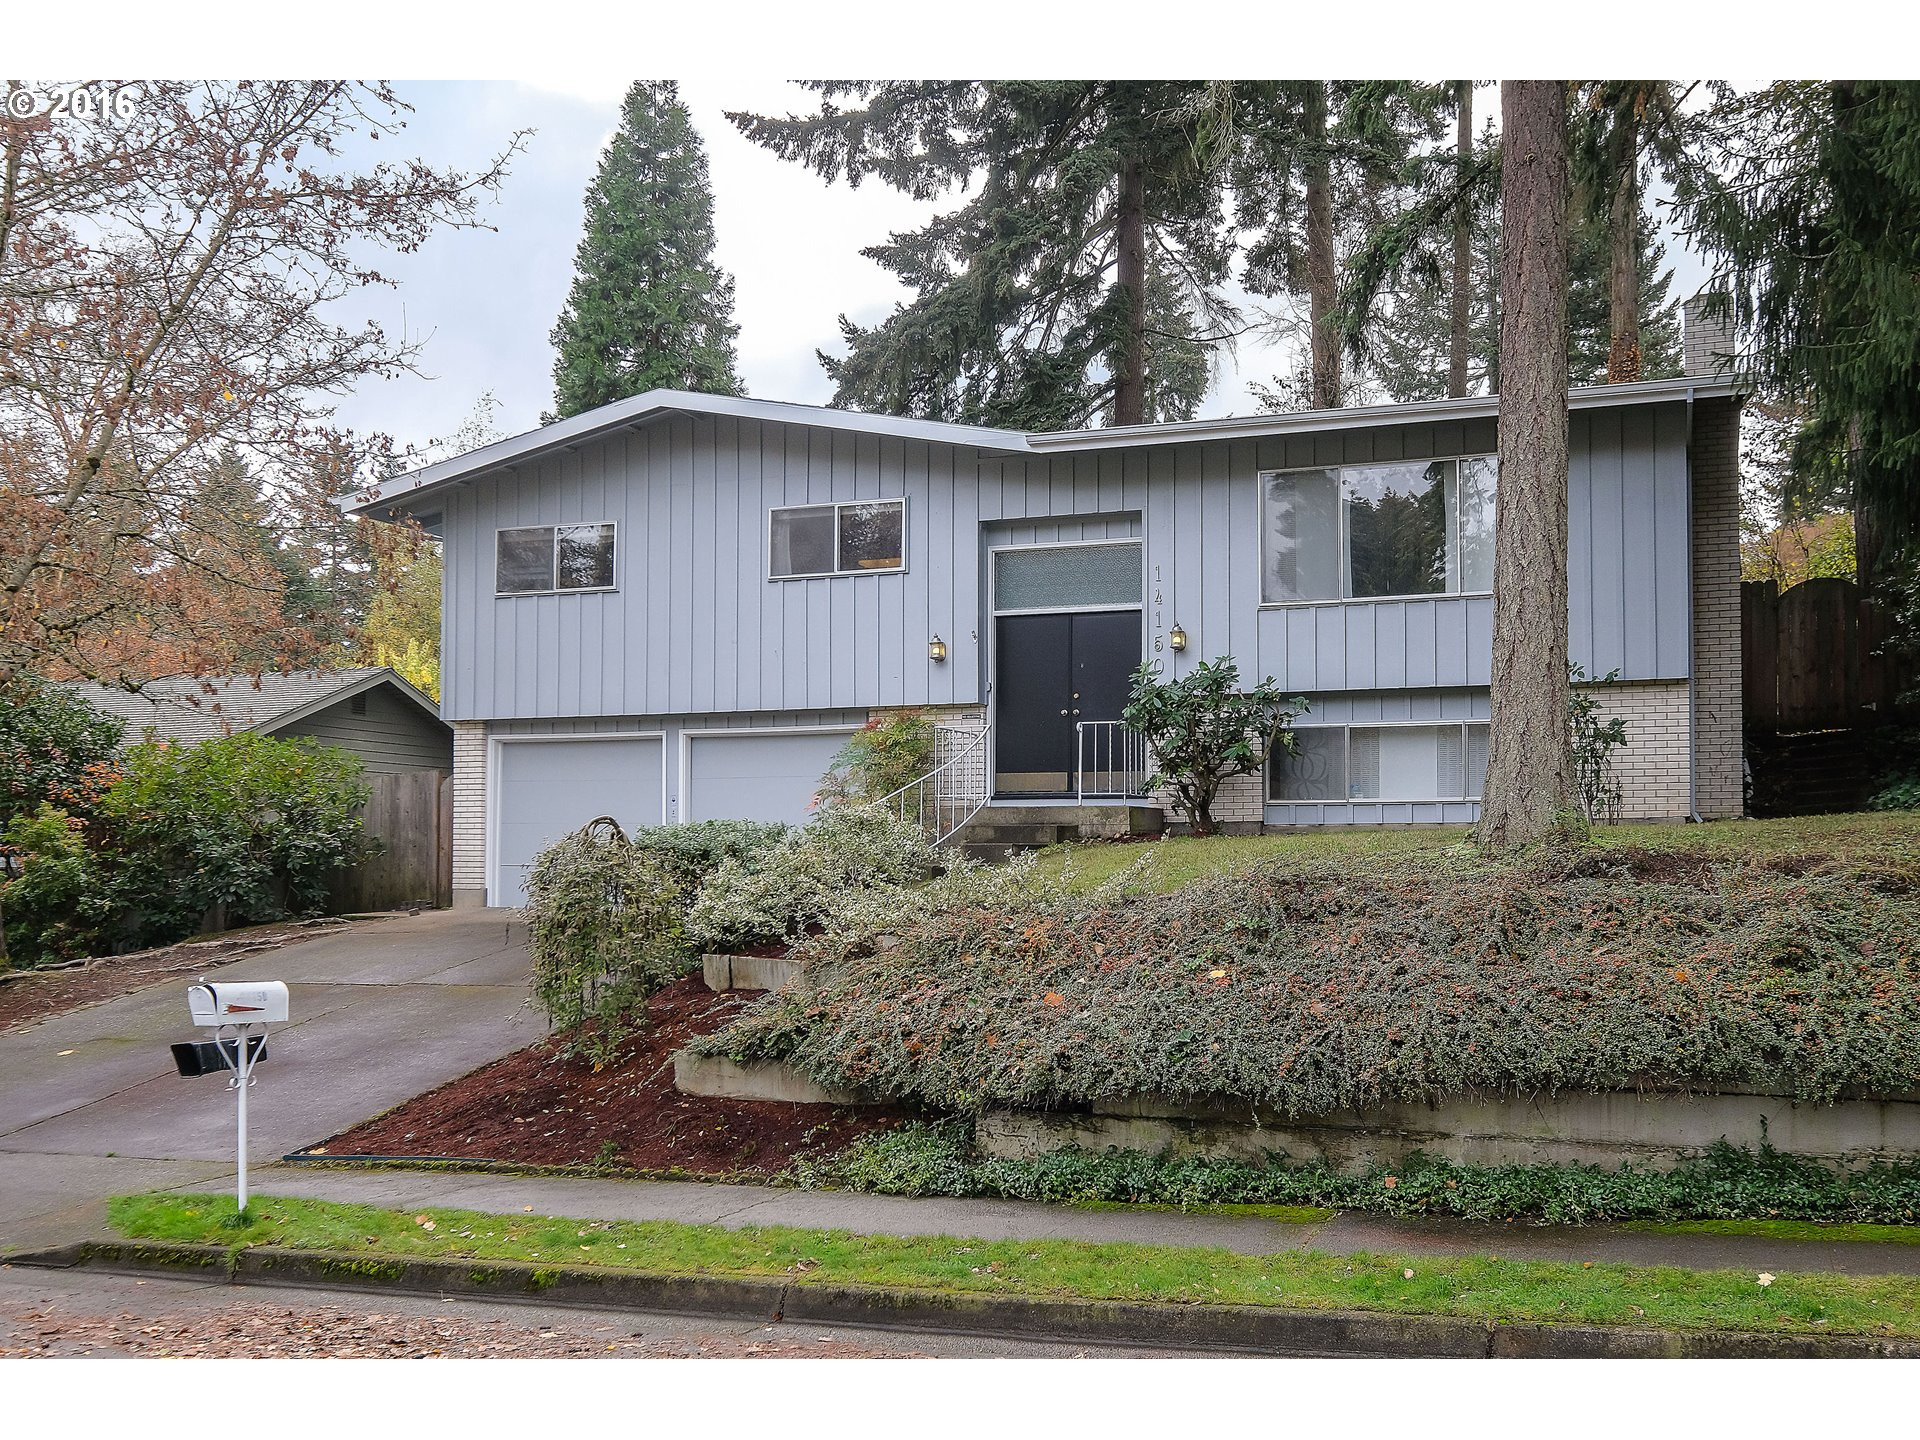 portland or realtor find homes in portland or and surrounding areas